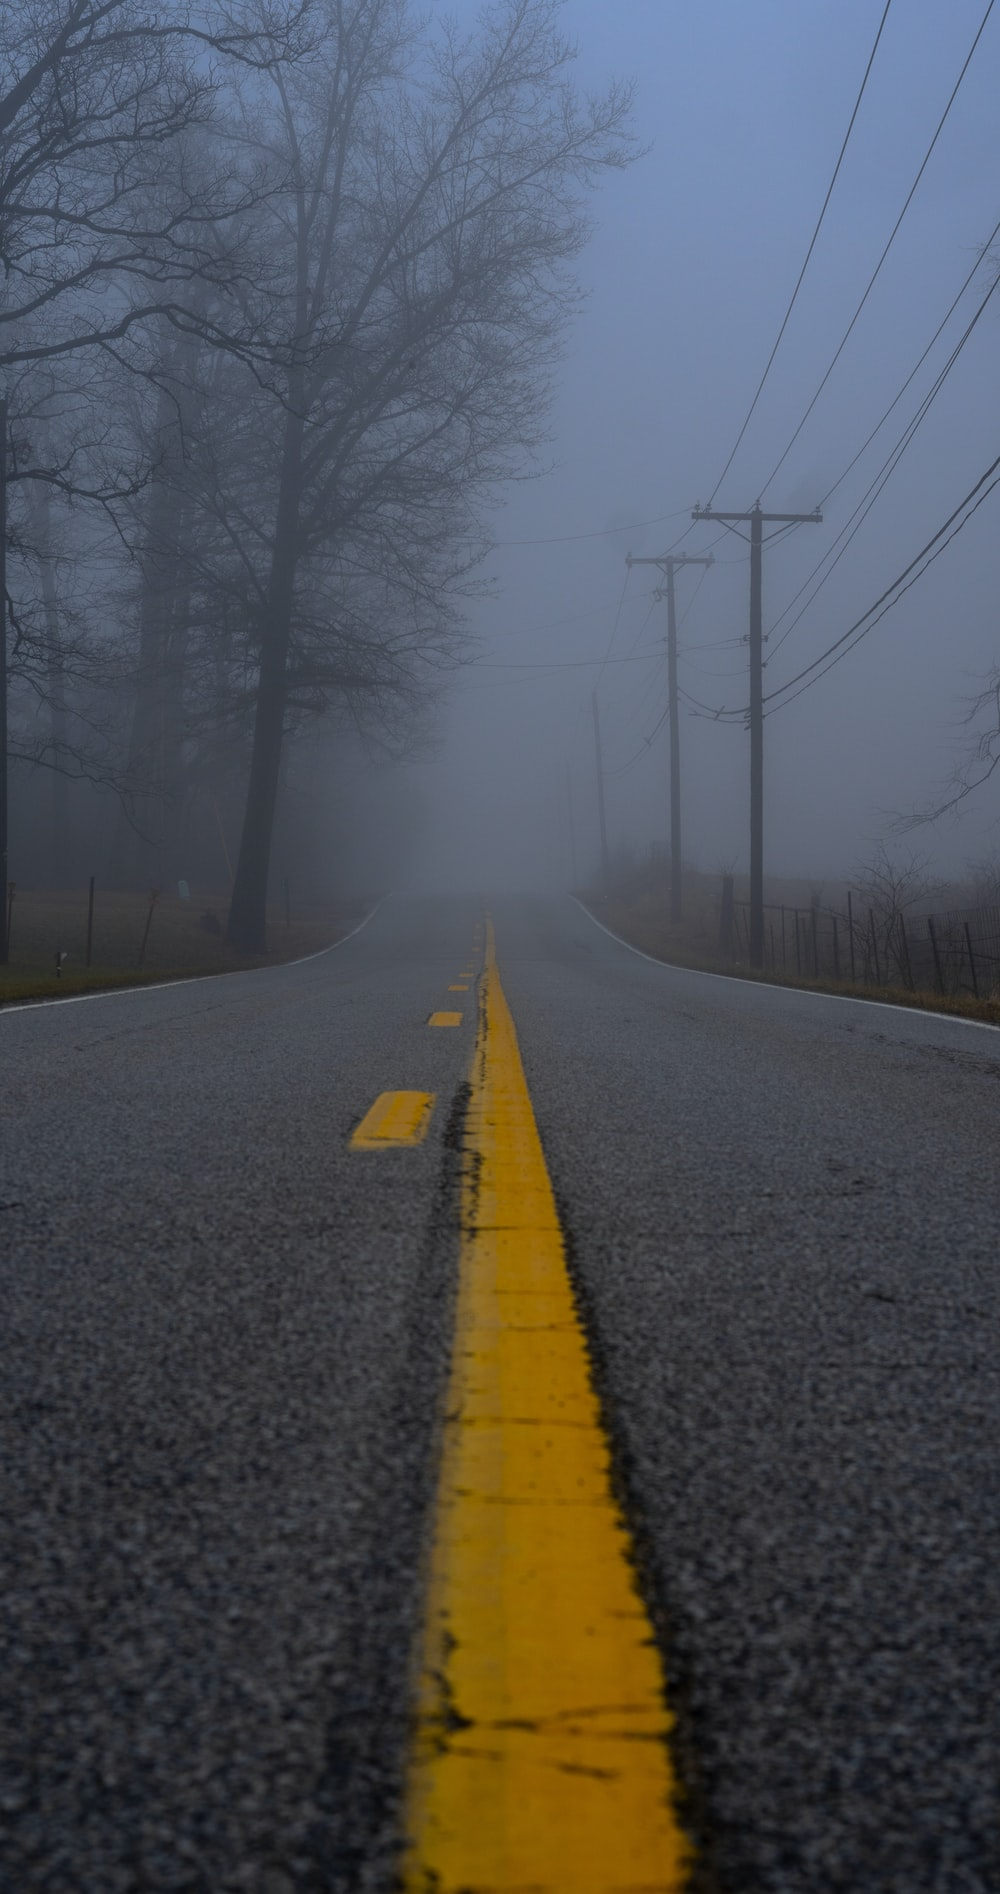 concrete road during foggy weather